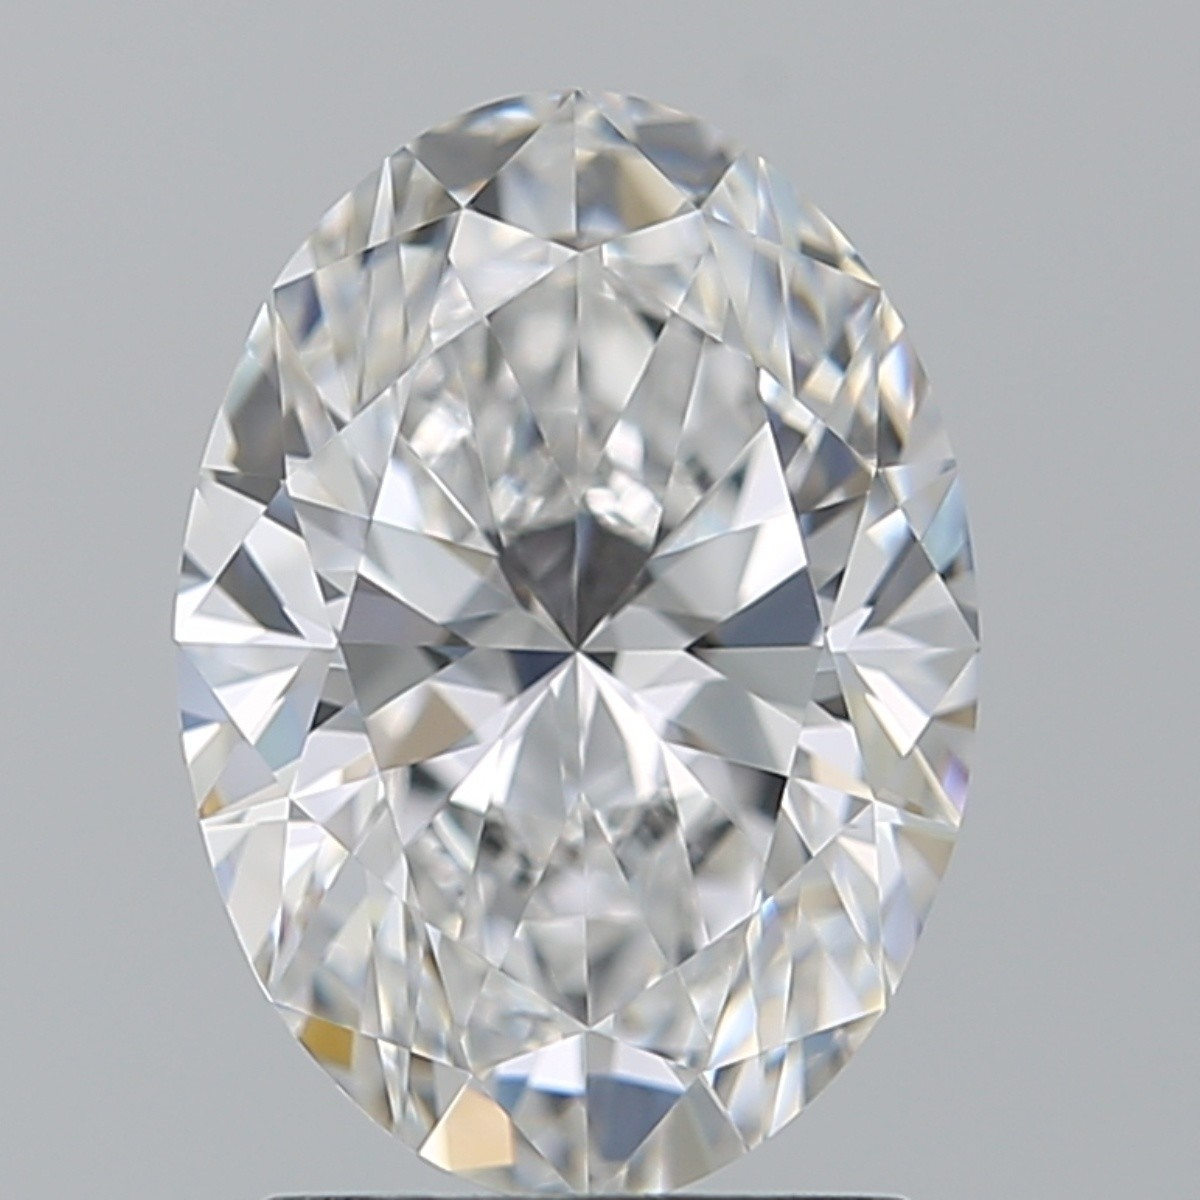 1.76 Carat Oval Diamond (D/VVS1)